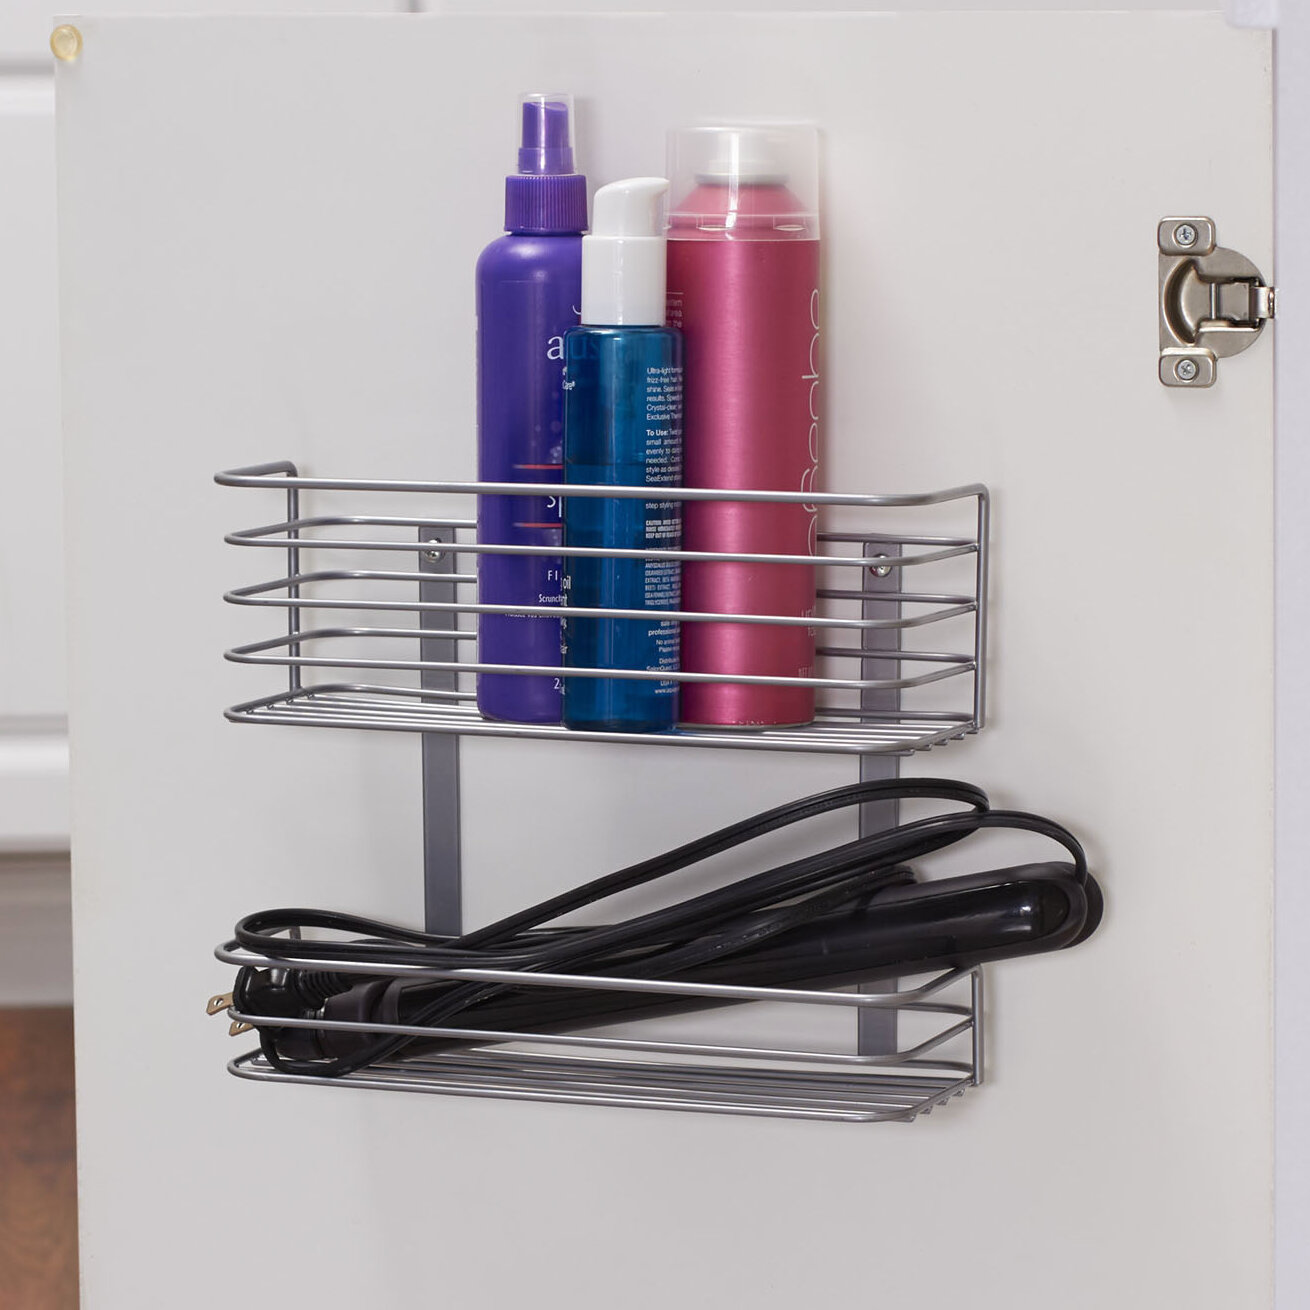 tier a out kitchen pdx corner two tabletop blind reviews shelf pull basket cabinet rev cookware organizer wayfair chrome